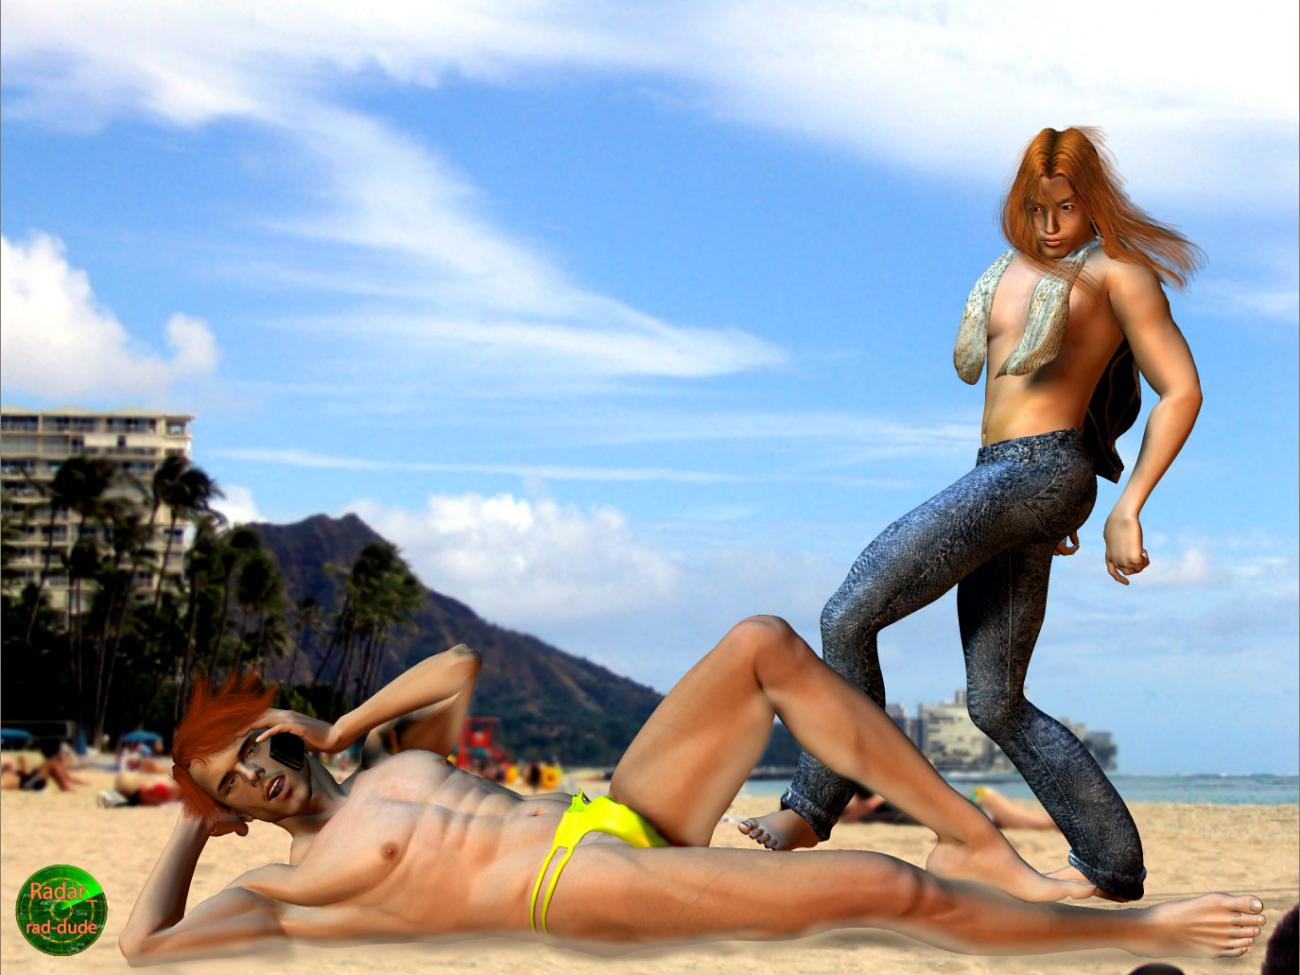 Beach patrol? That long red haired stalker's back!